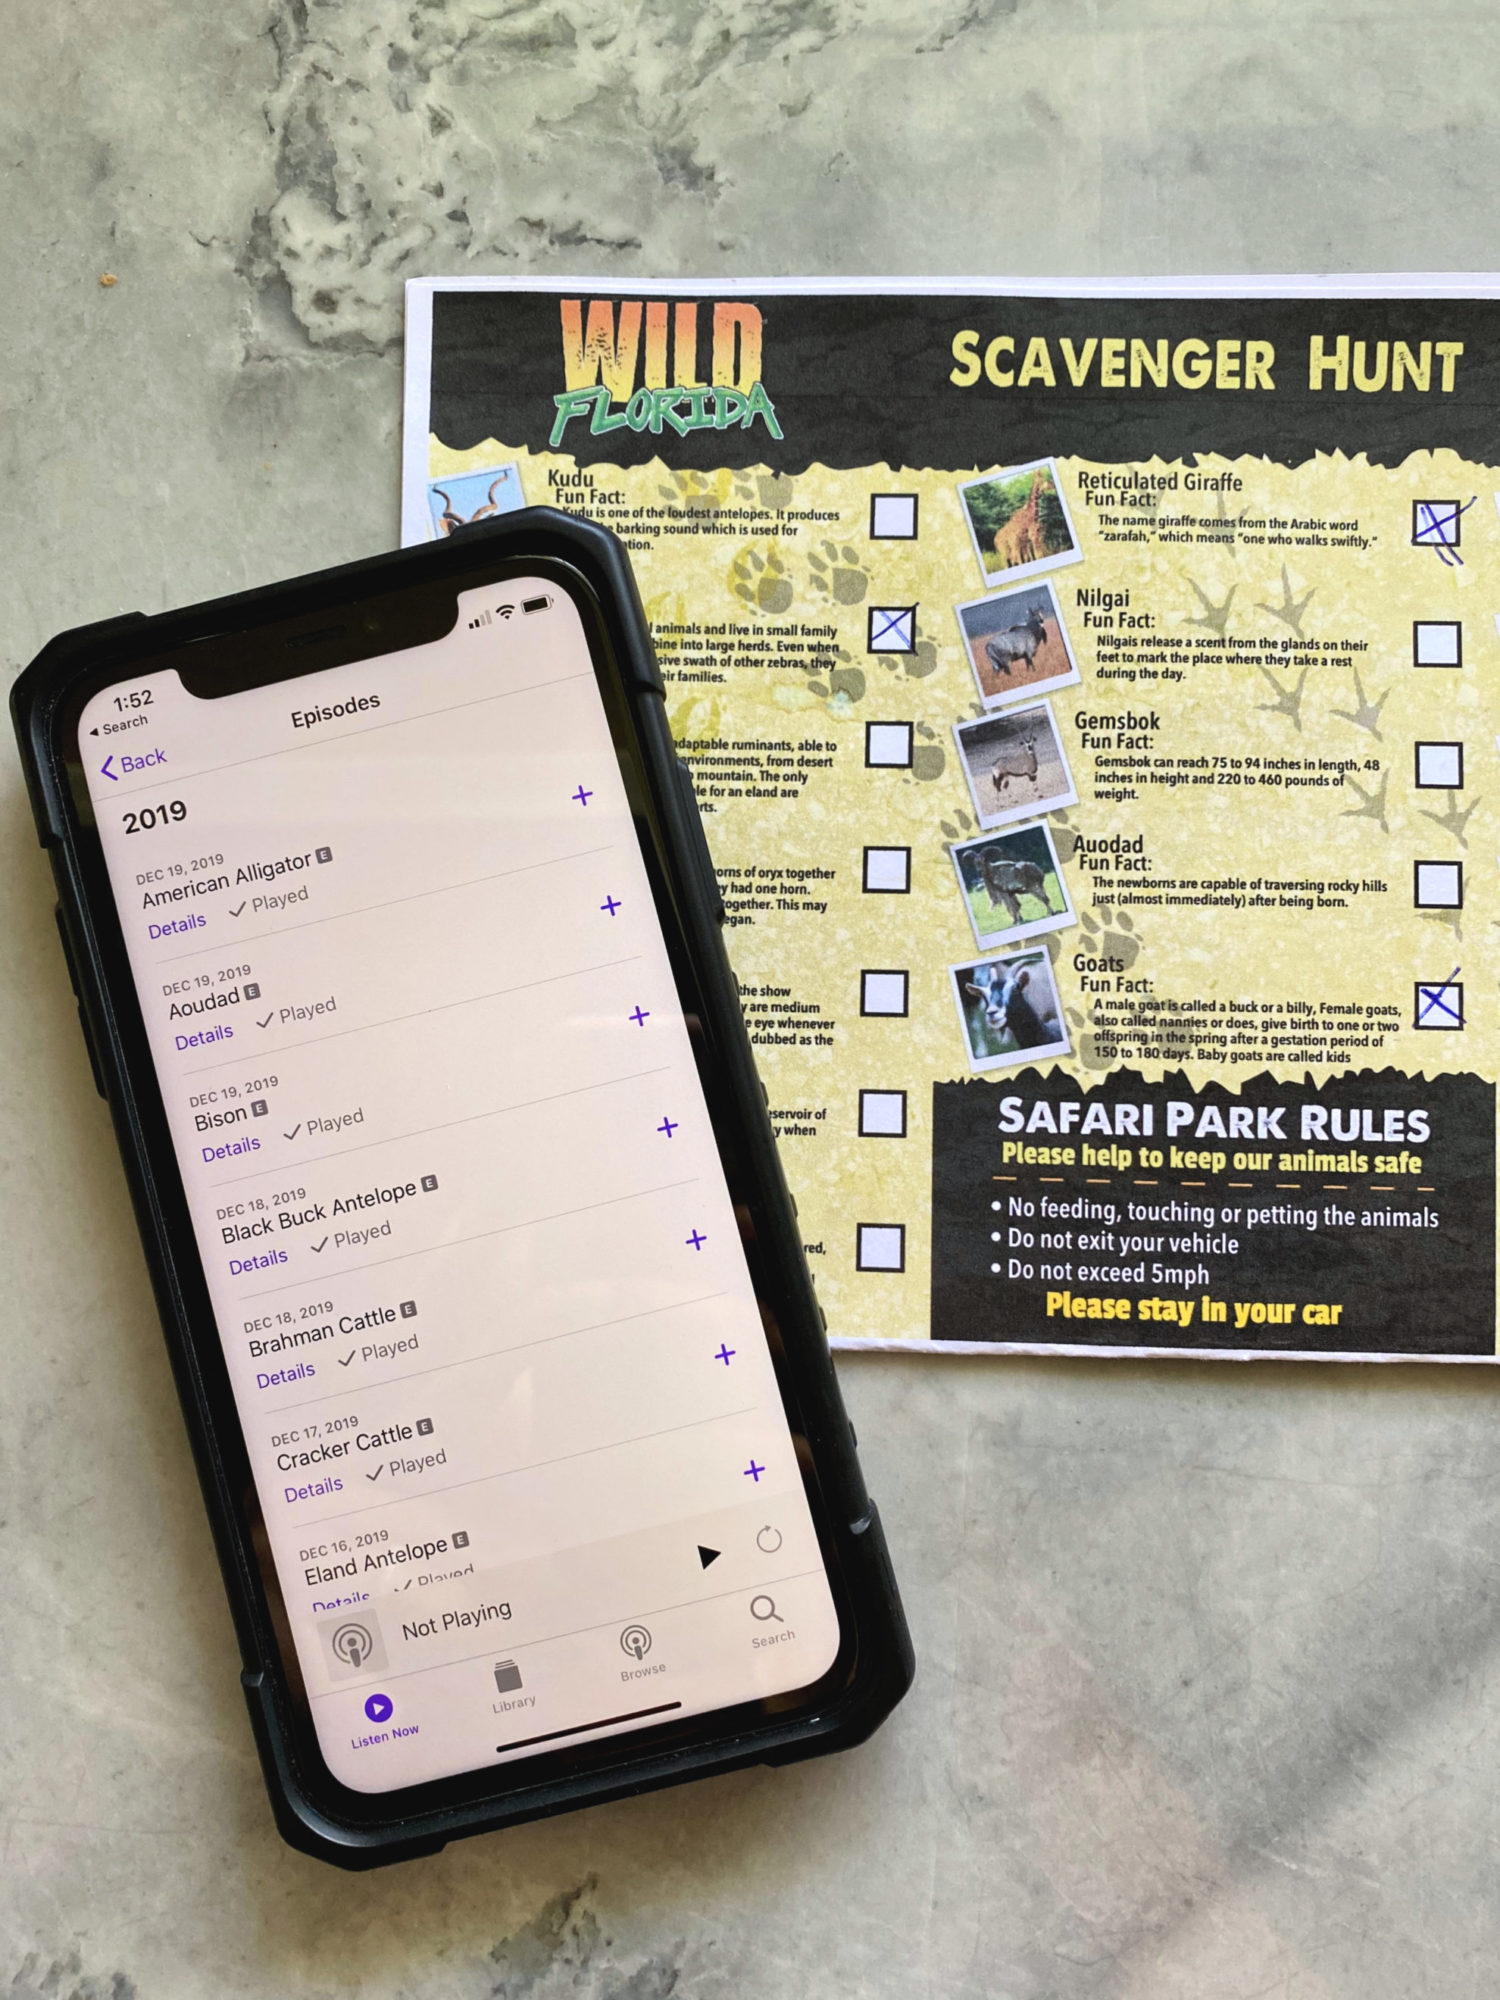 Downlaod the Podcast and Scavenger Hunt from Wild Florida Drive-Thru Safari Park